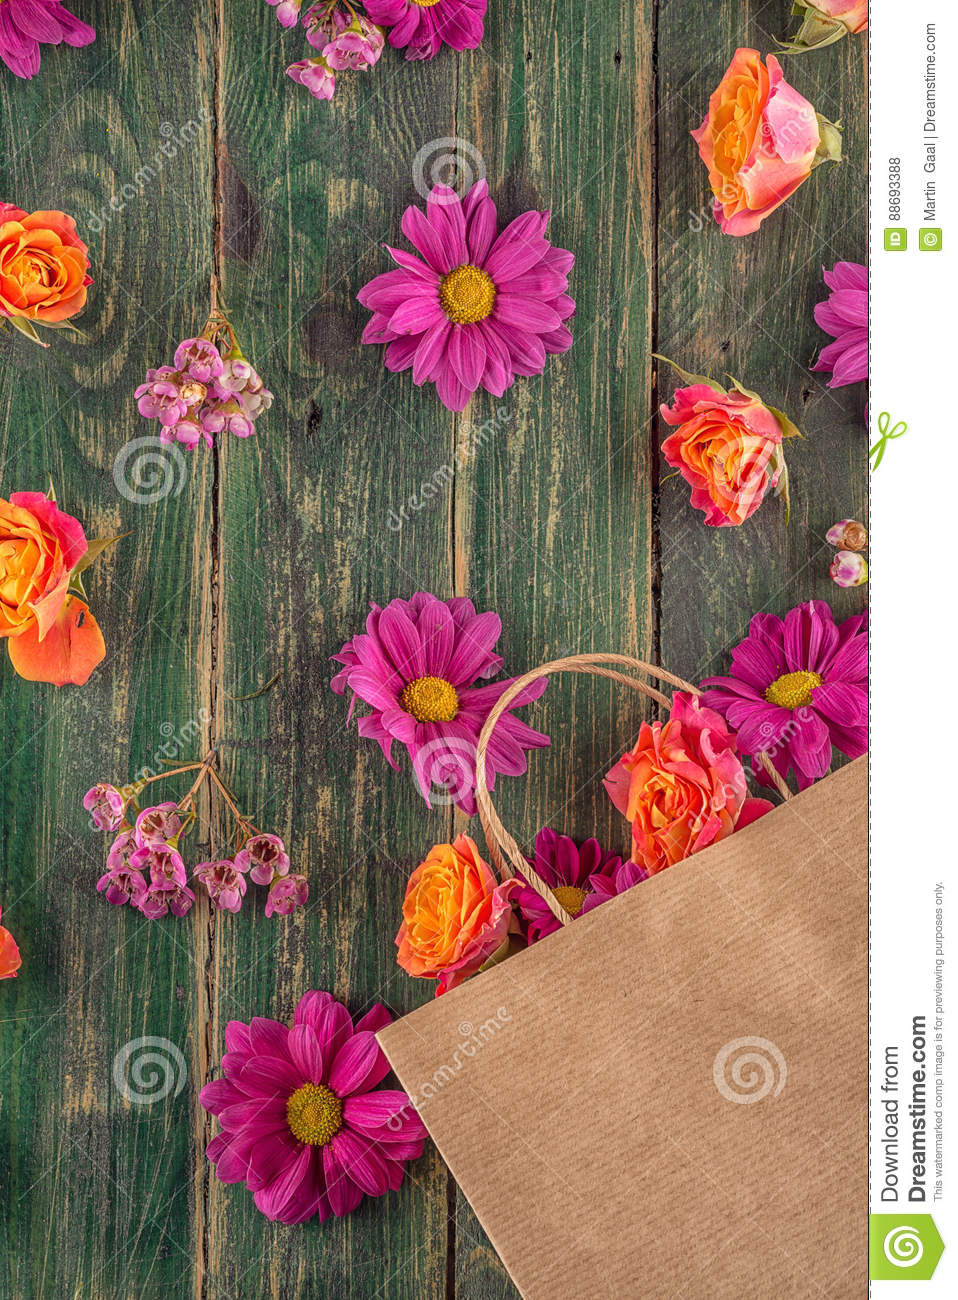 Paper bag with flowers on wooden background shopping time or time download paper bag with flowers on wooden background shopping time or time for sales stock mightylinksfo